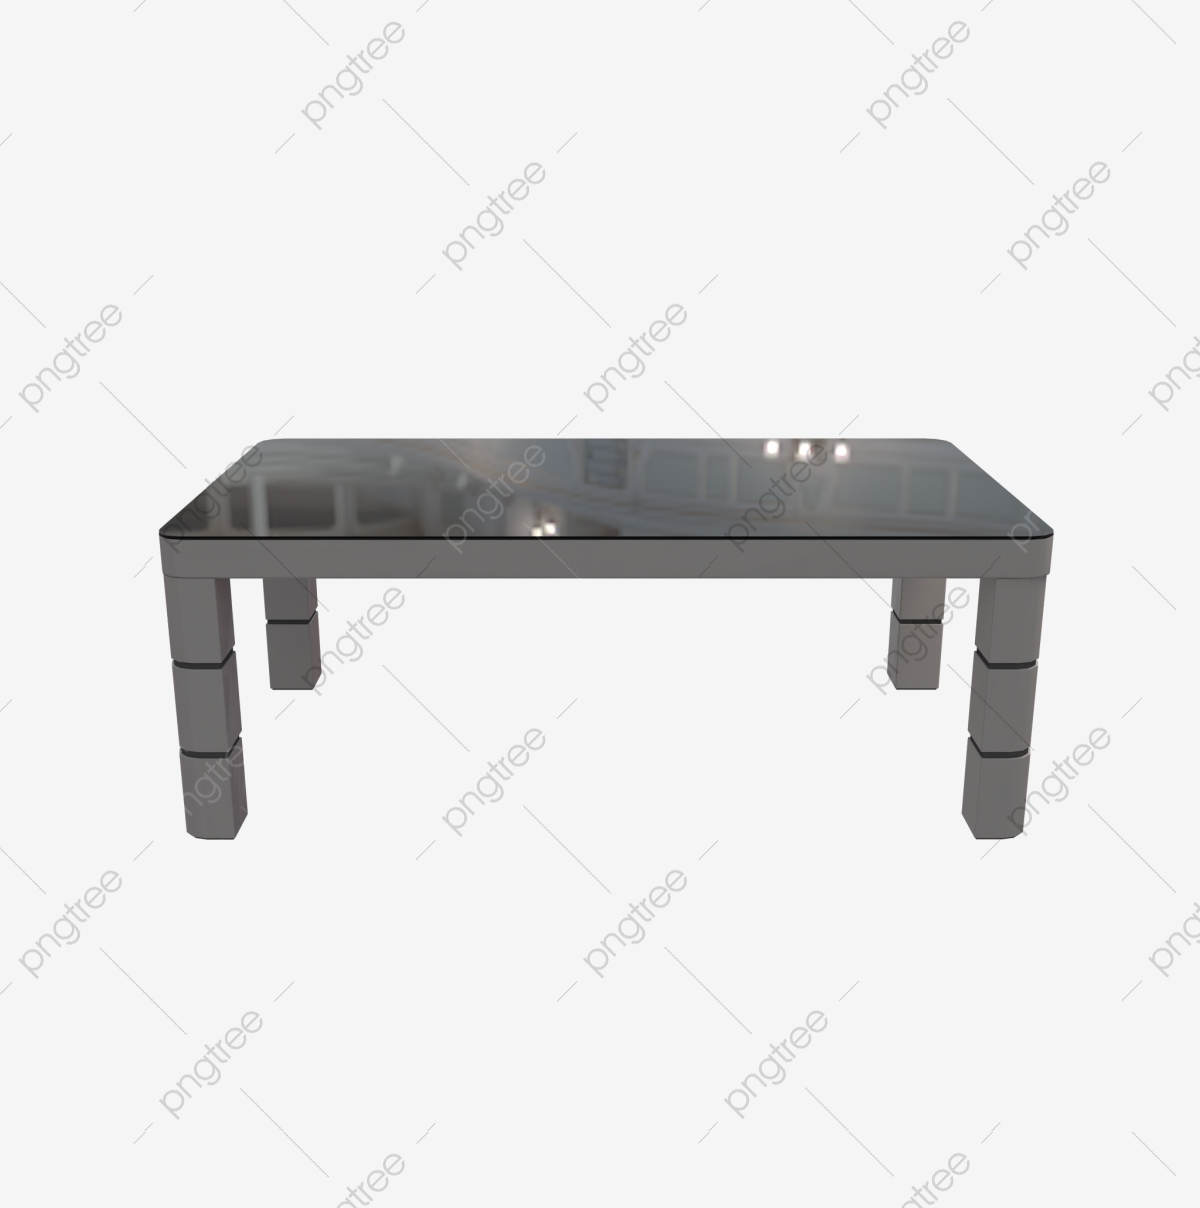 Simple And Modern Style Dining Table Furniture Realistic Home Improvement Png Transparent Clipart Image And Psd File For Free Download